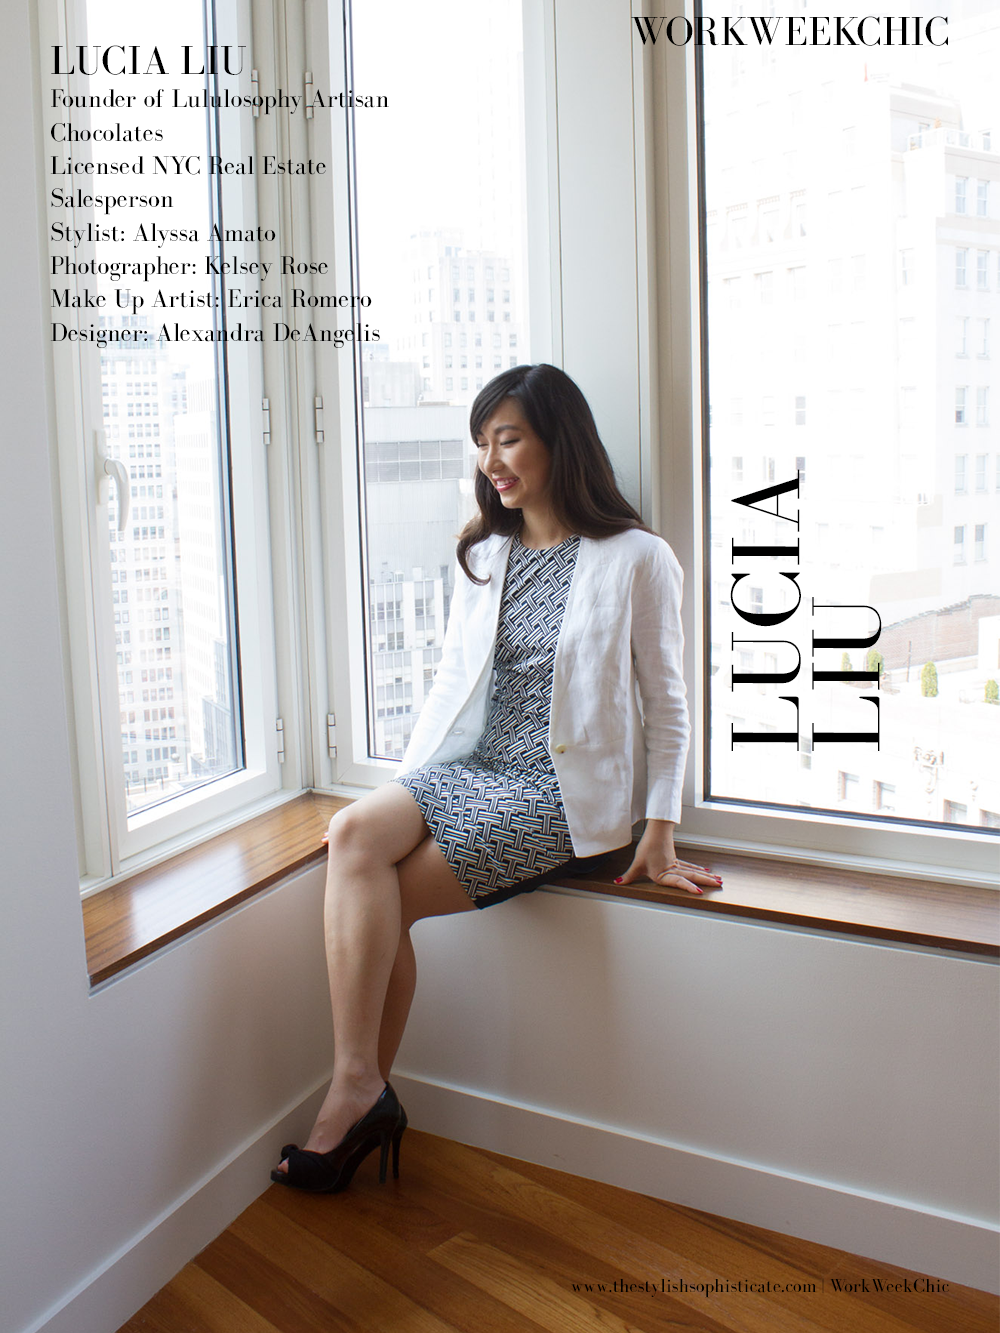 Feature on Work Week Chic